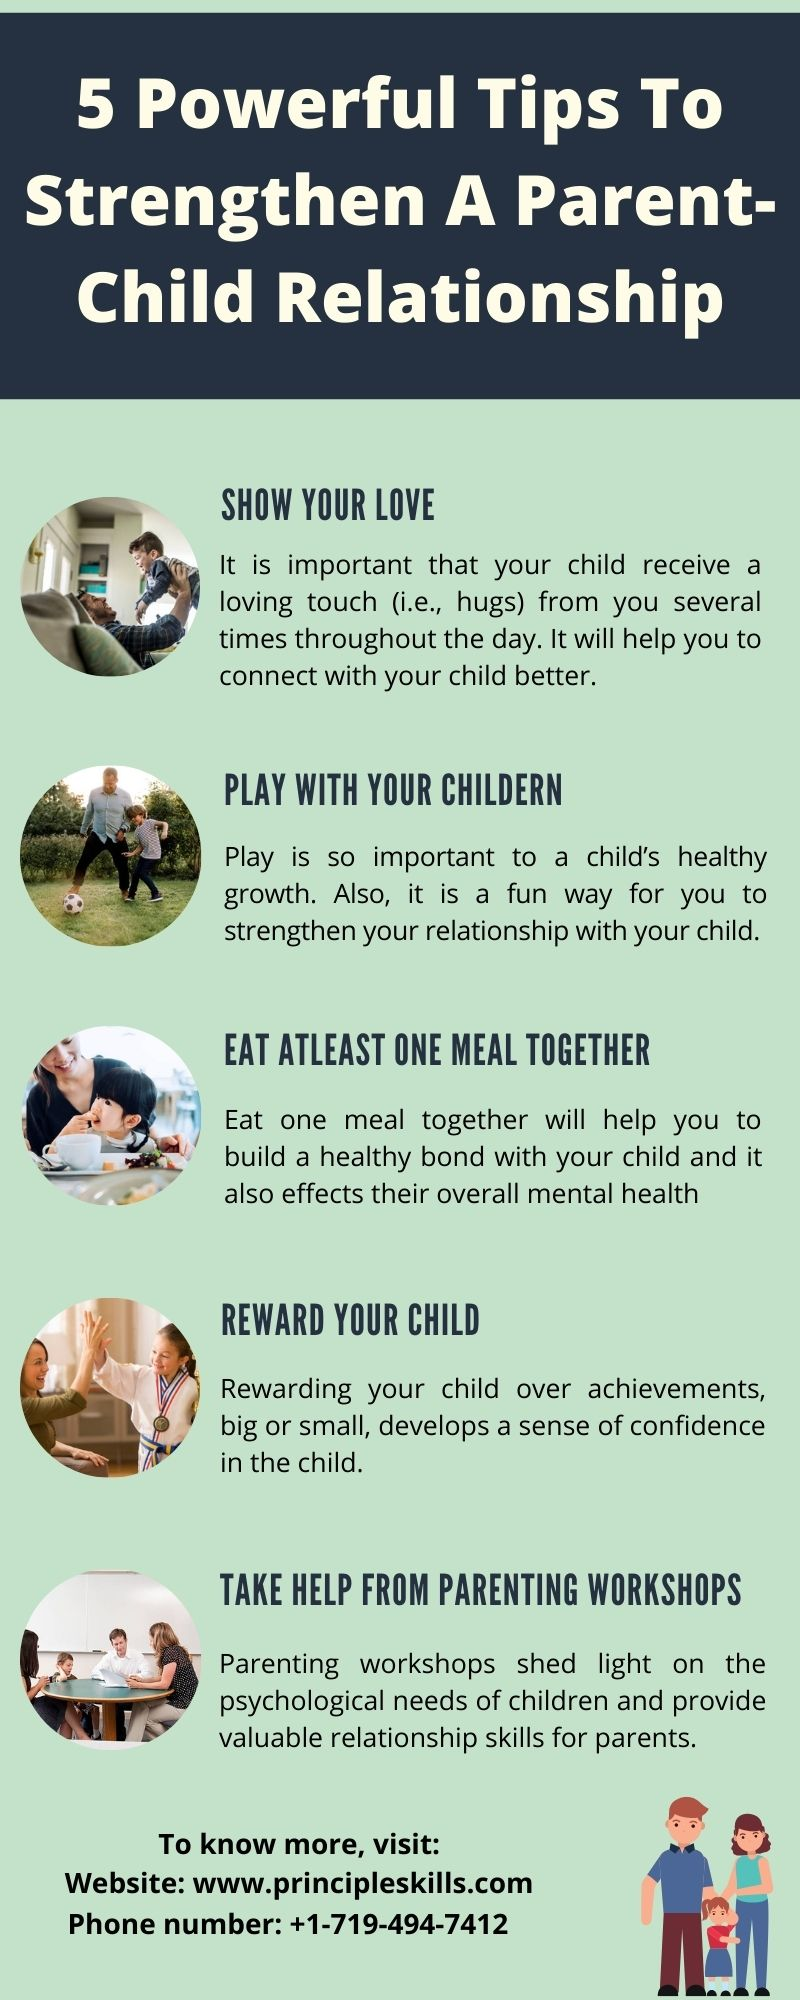 5 Powerful Tips To Strengthen A Parent-Child Relationship